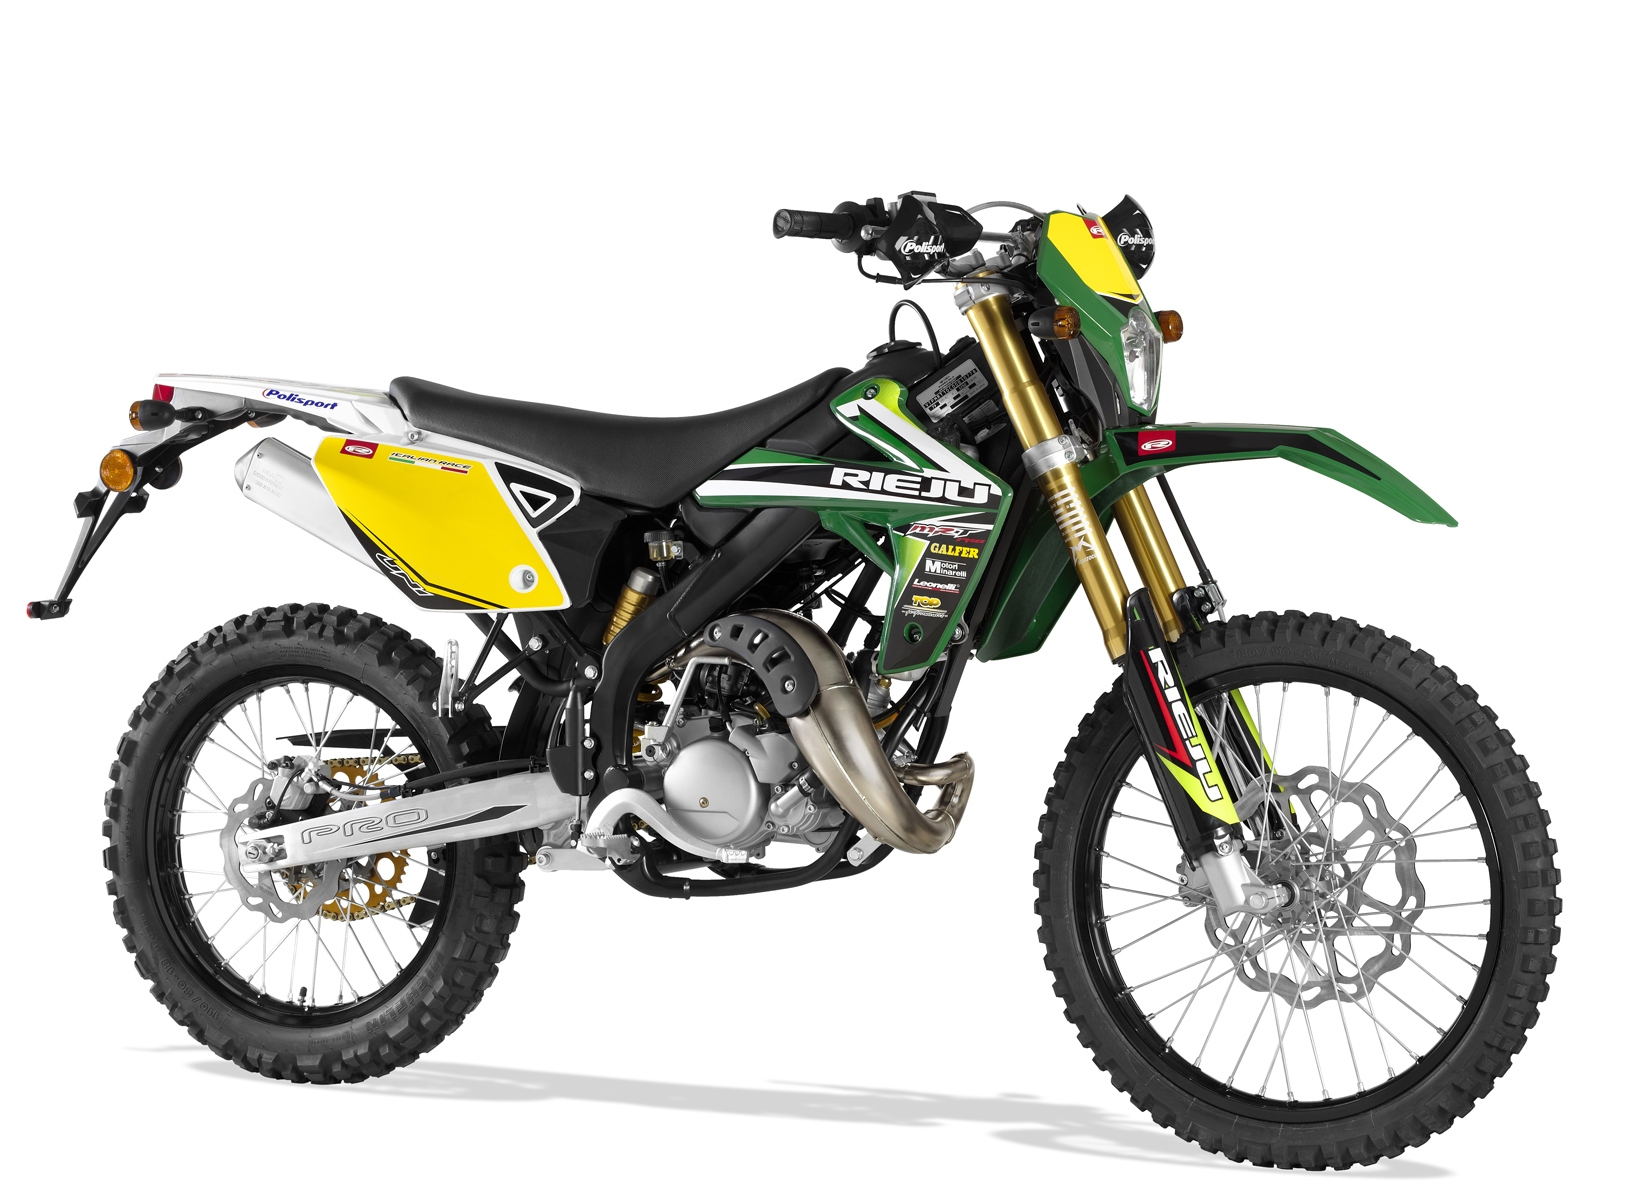 2013 rieju mrt 50 pro the diminutive motocross machine. Black Bedroom Furniture Sets. Home Design Ideas